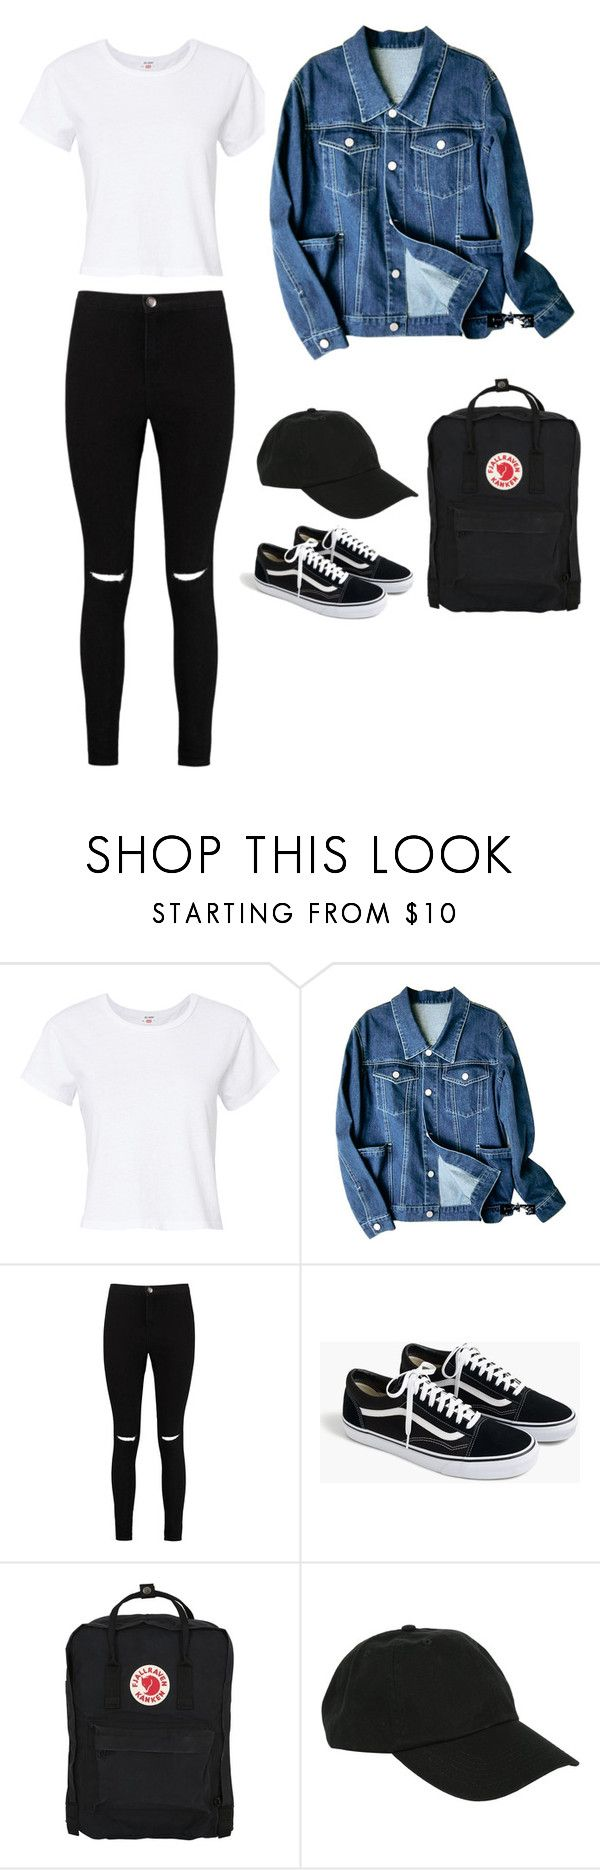 """""""school pt. 3"""" by i0119 on Polyvore featuring RE/DONE, Boohoo, J.Crew, Fjällräven and Hot Topic"""